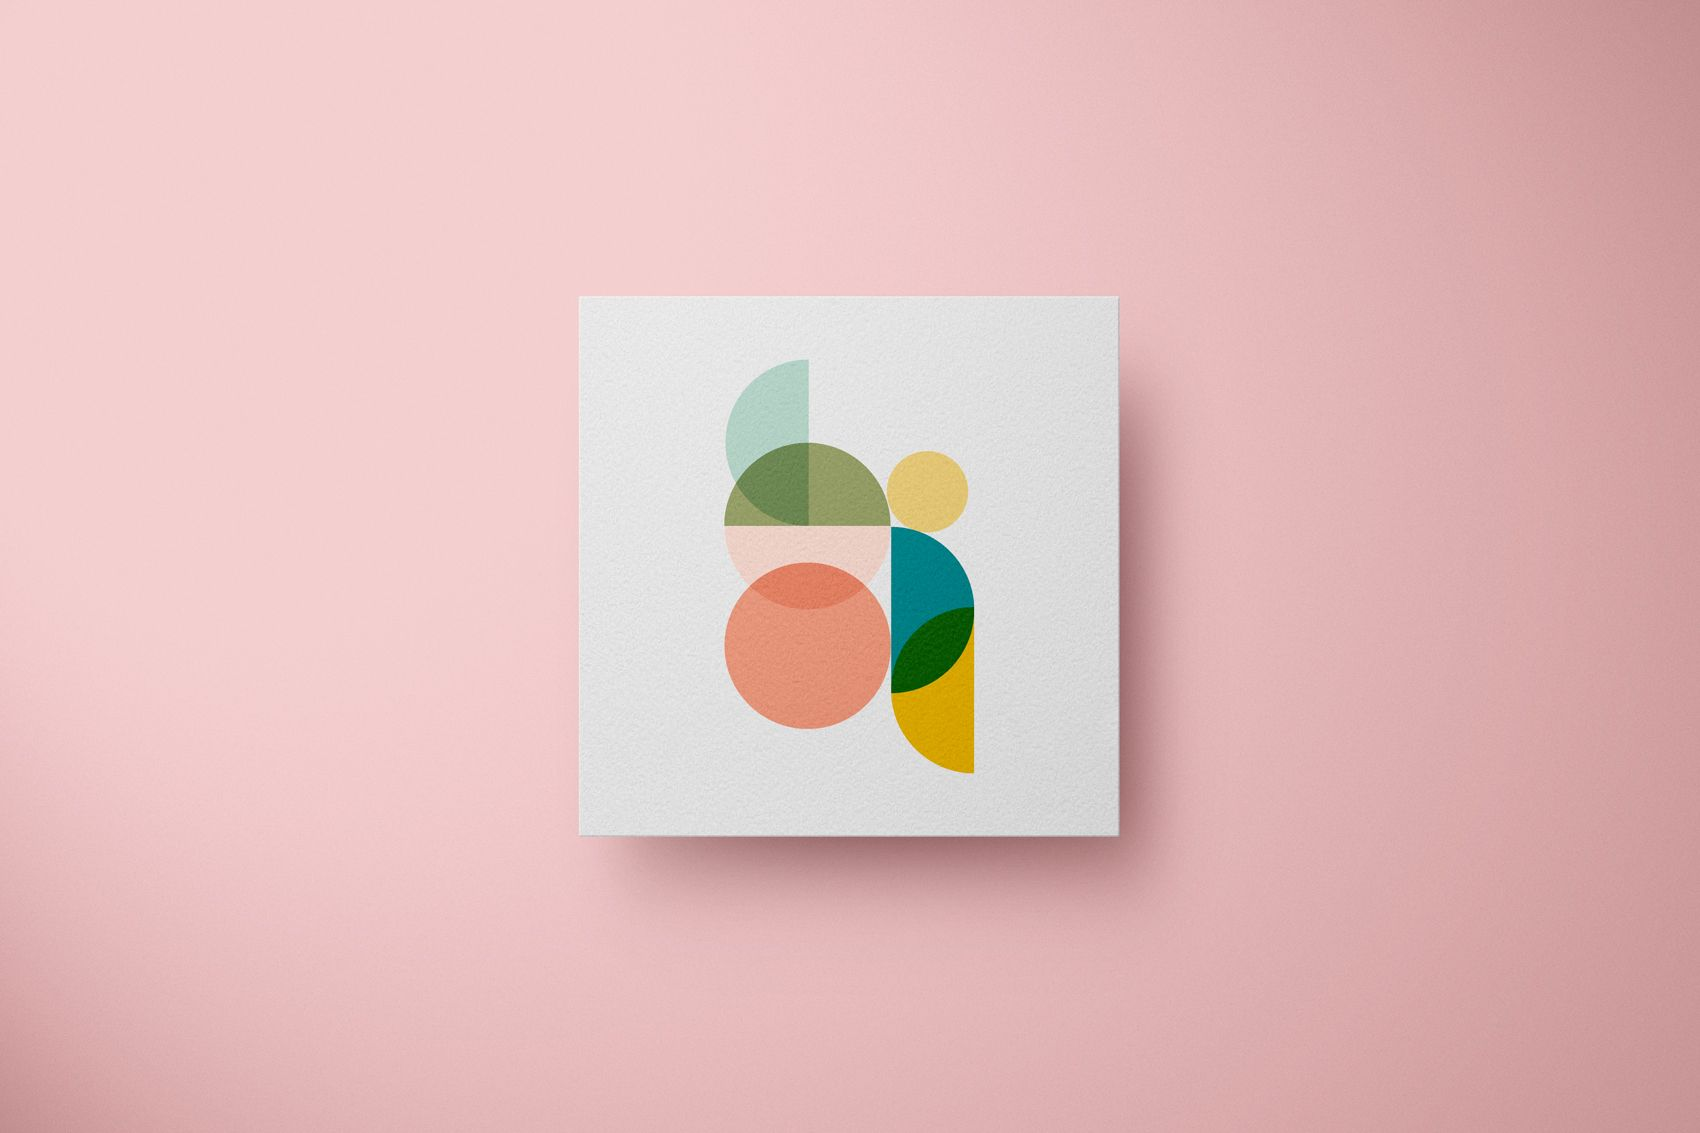 geometric illustration logo